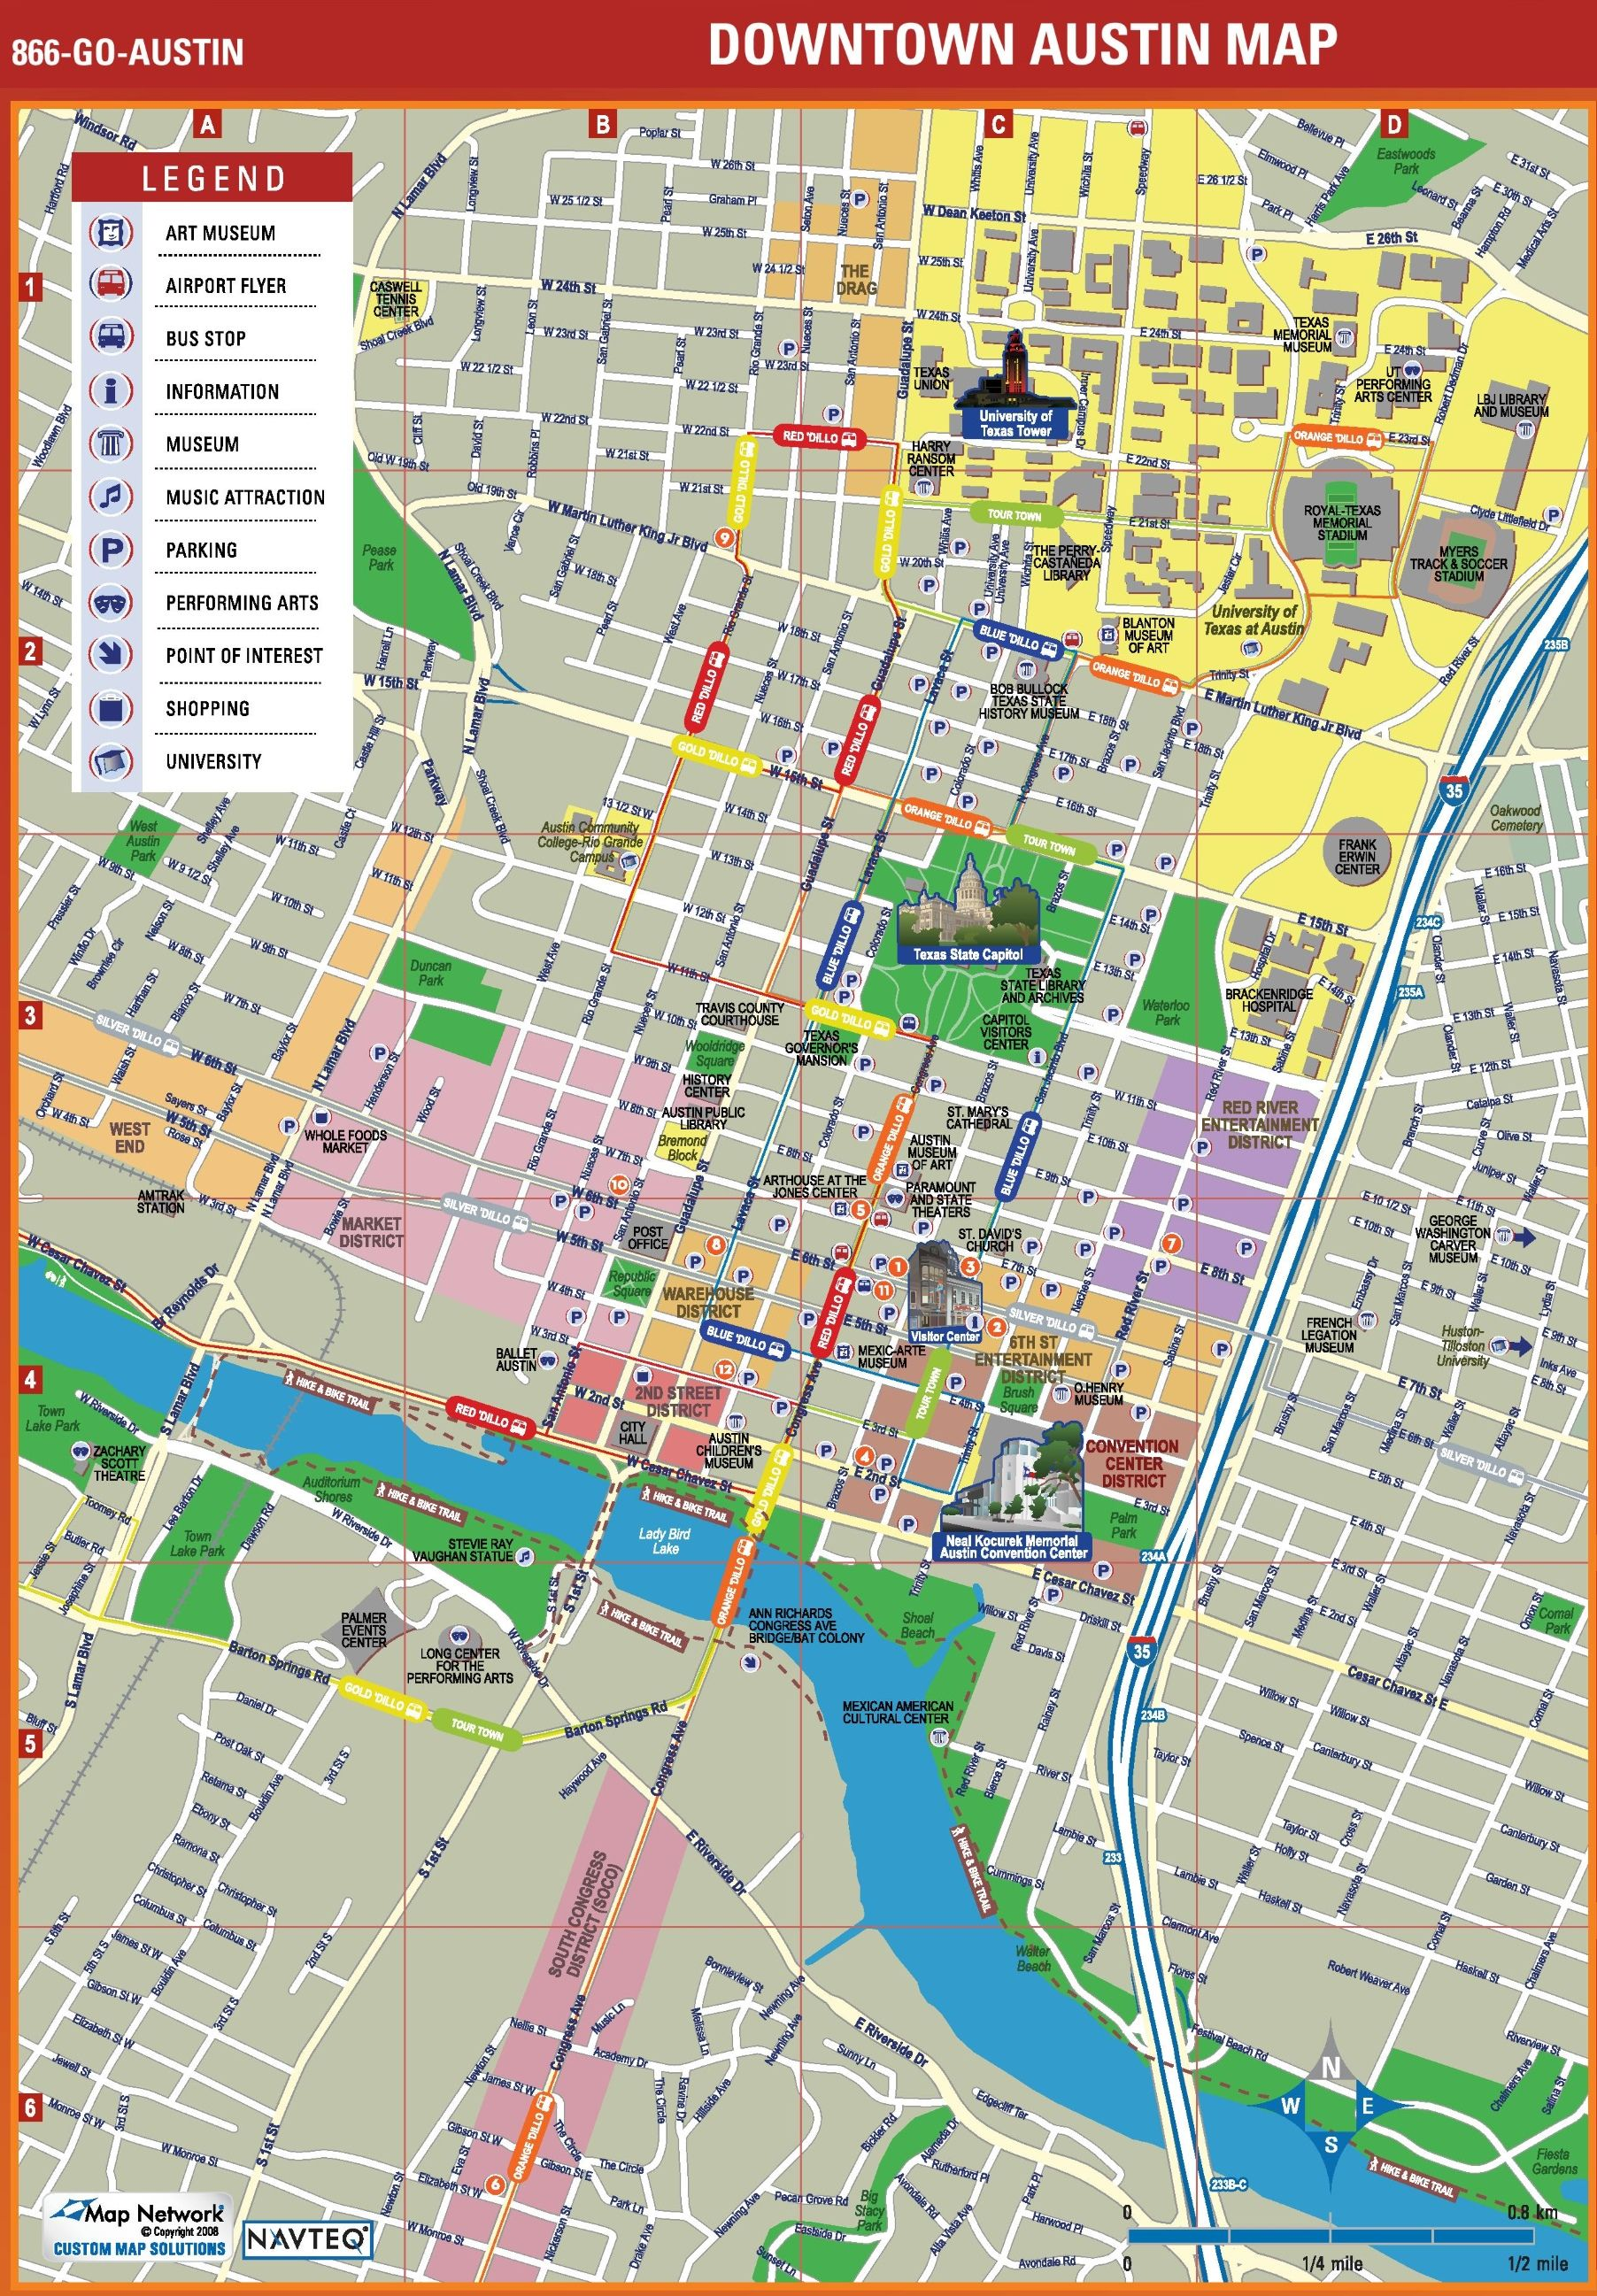 Austin Tourist Attractions Map Stunning Downtown Austin Map